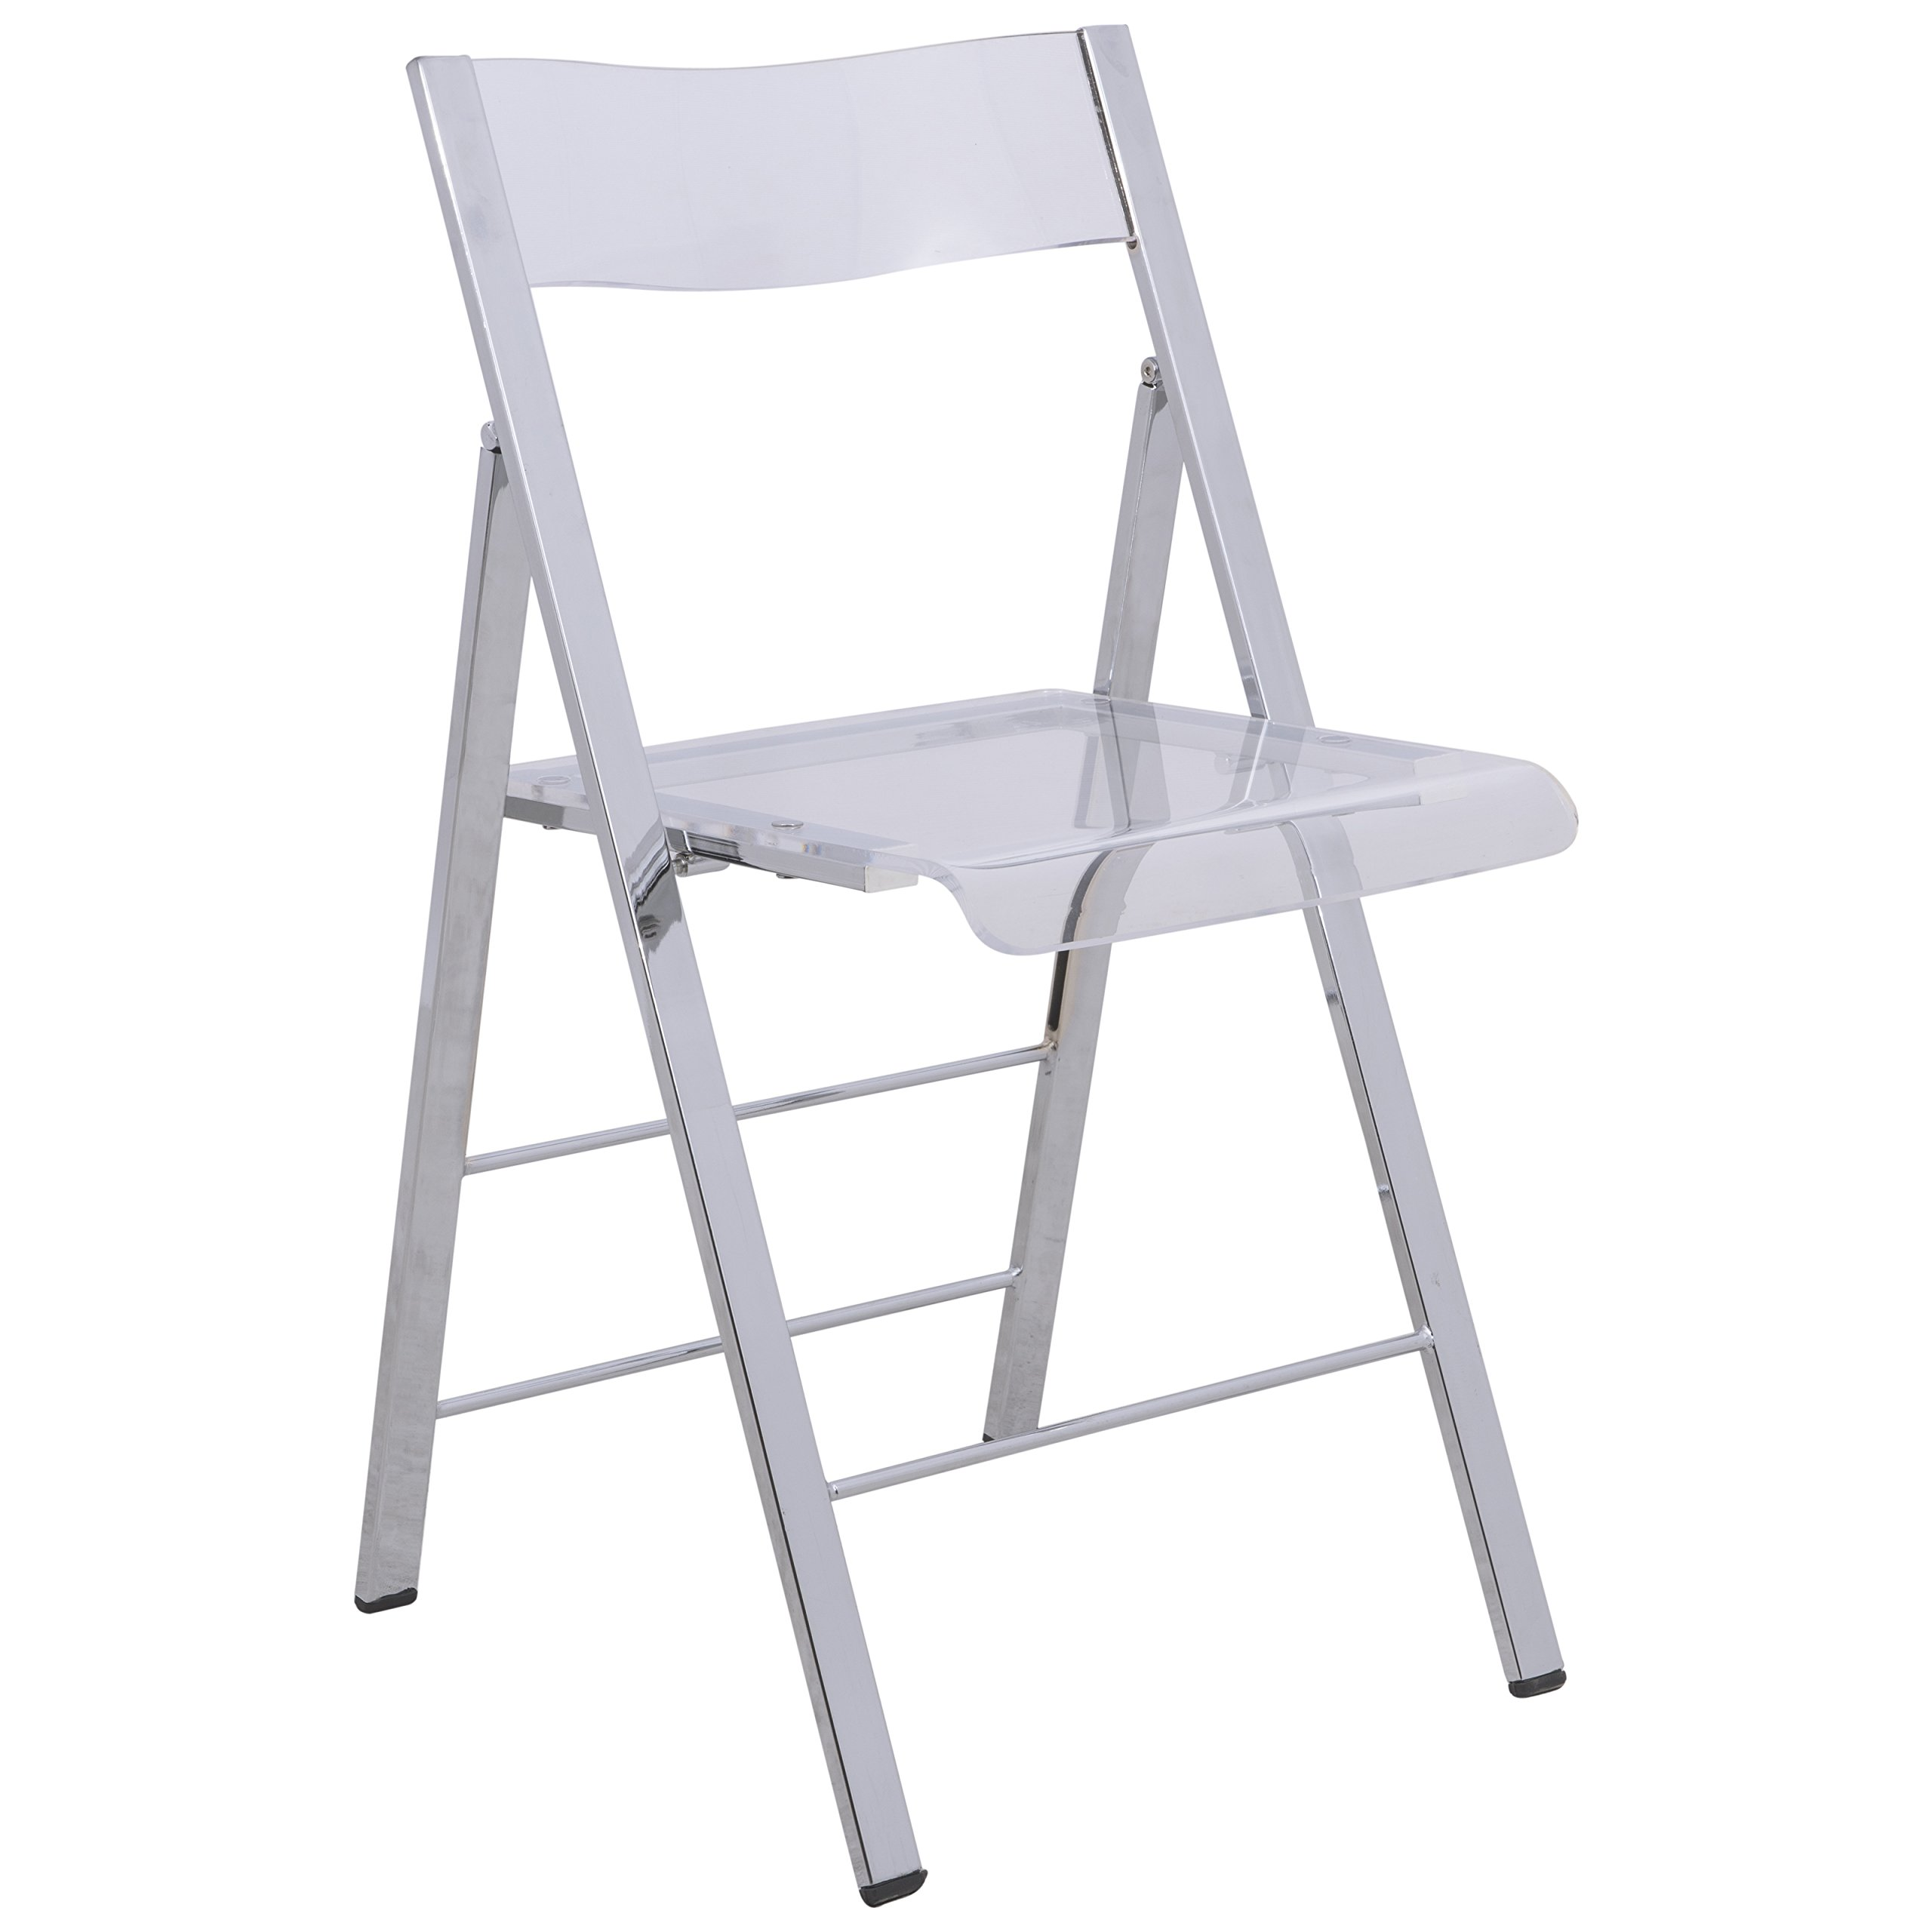 LeisureMod Milden Modern Acrylic Folding Chairs in Clear